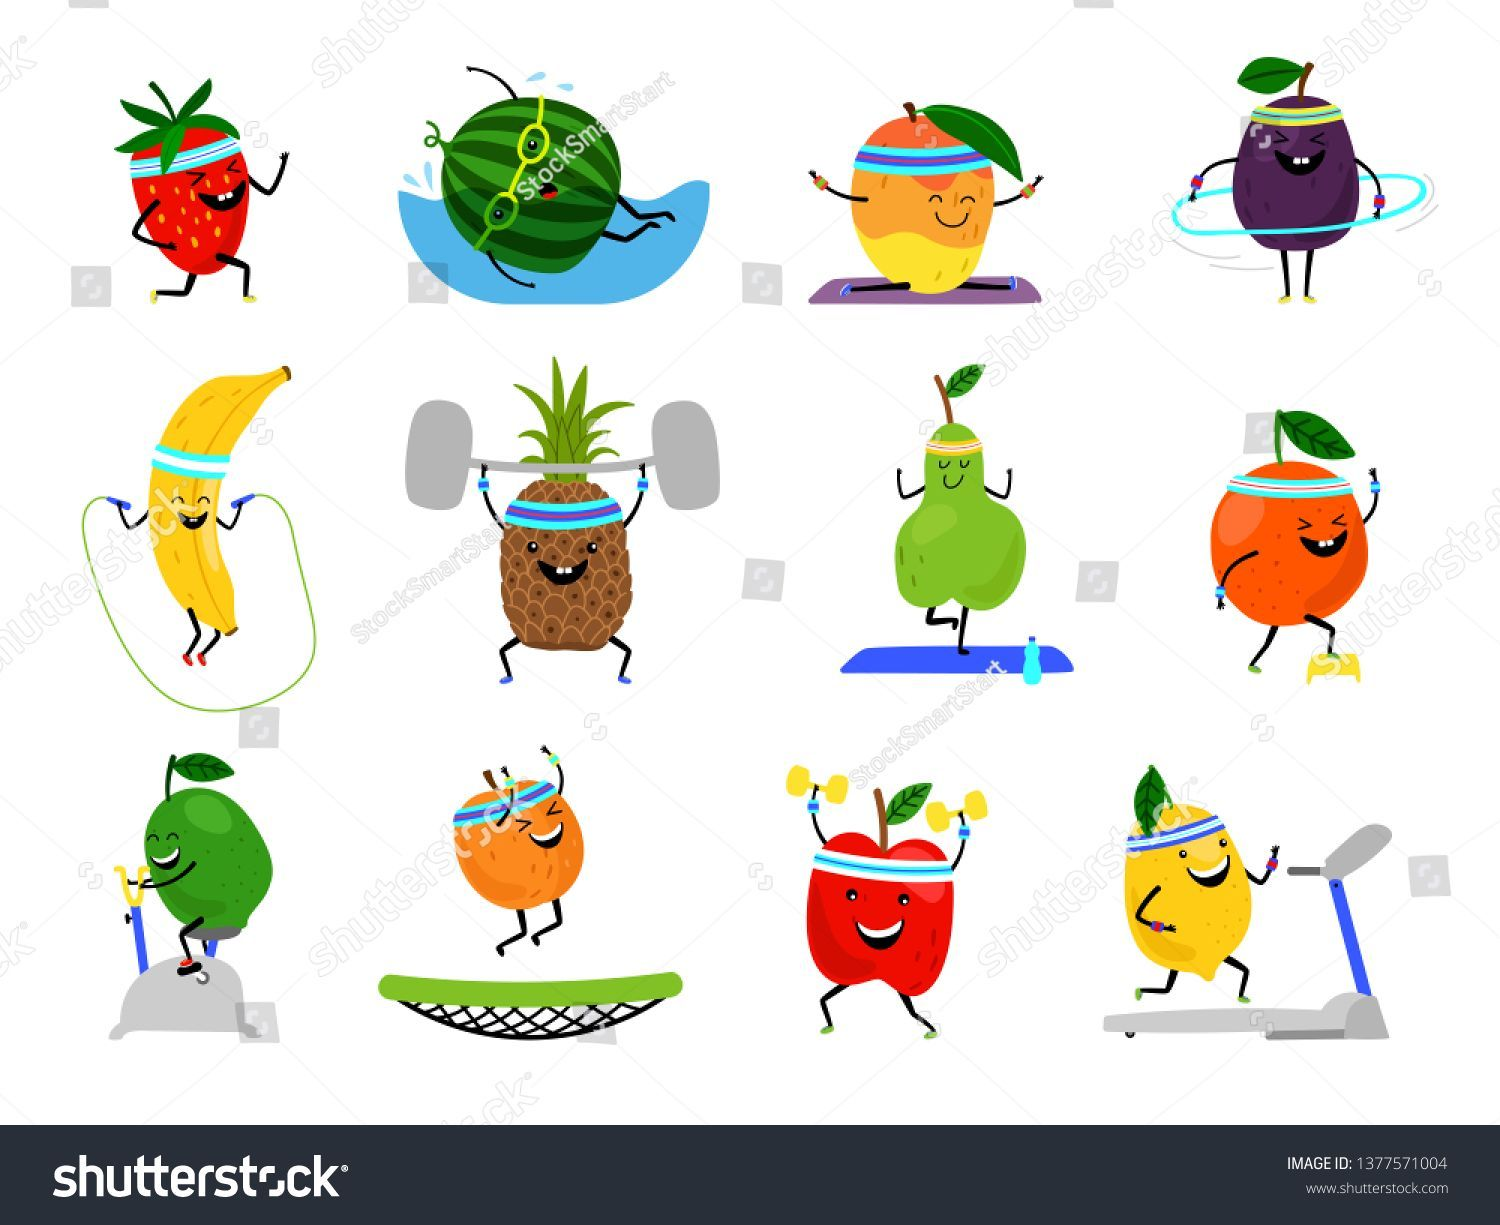 Sport Fruits Characters Funny Fruit Foods Stock Vector (Royalty Free) 1377571004  Sport fruits characters. Funny fruit foods on sport exercises, fitness vitaminic human healthy nutr #characters #Foods #Free #fruit #fruits #Funny #Royalty #Sport #Stock #Vector